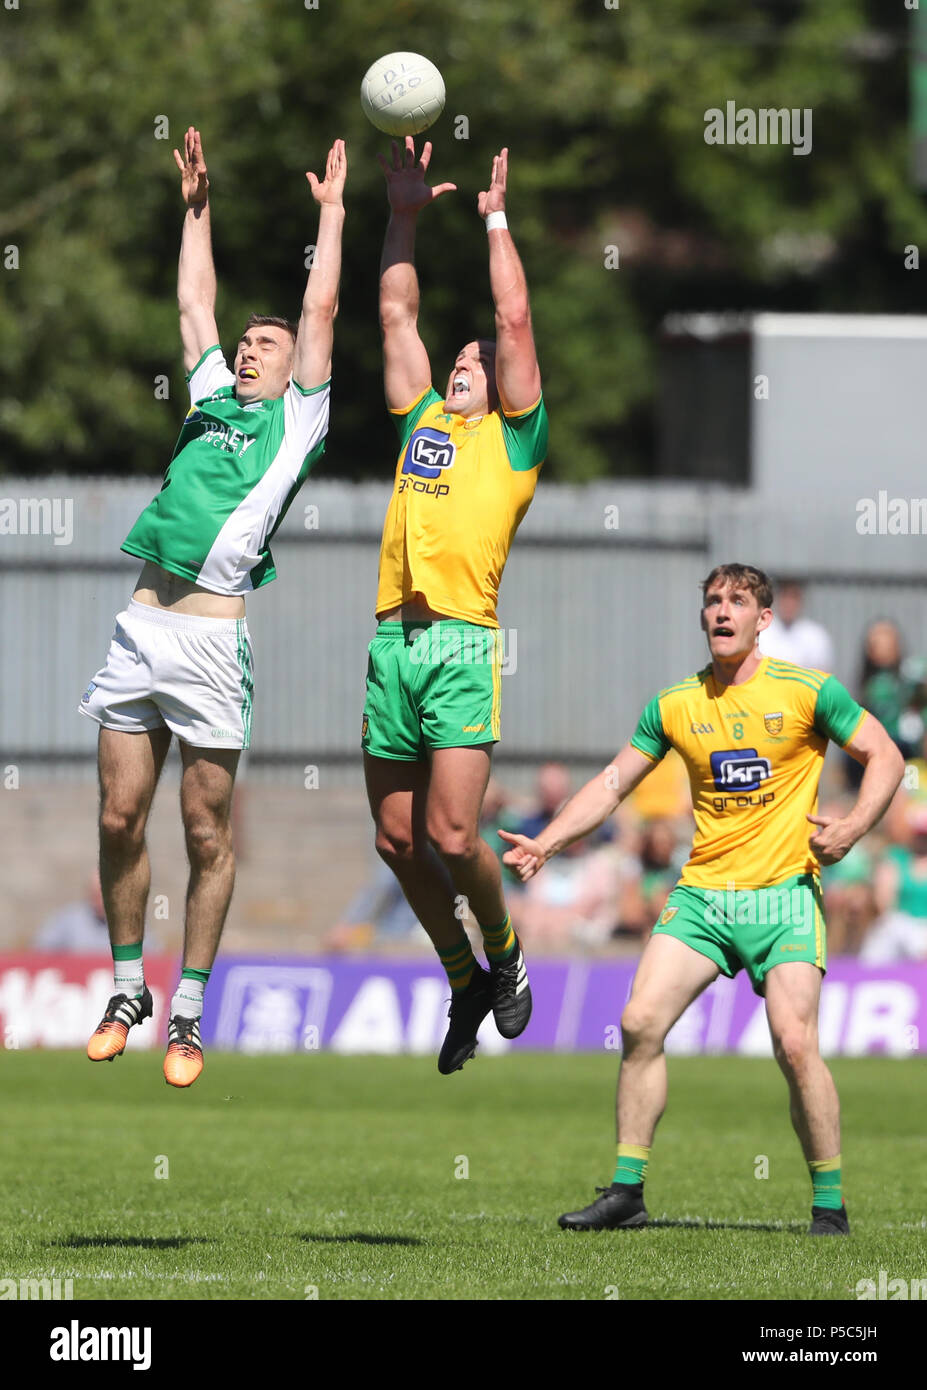 Fermanagh's Conall Jones and Donegal's Michael Murphy during the GAA Ulster Final in Clones, Co Monaghan, Ireland. - Stock Image